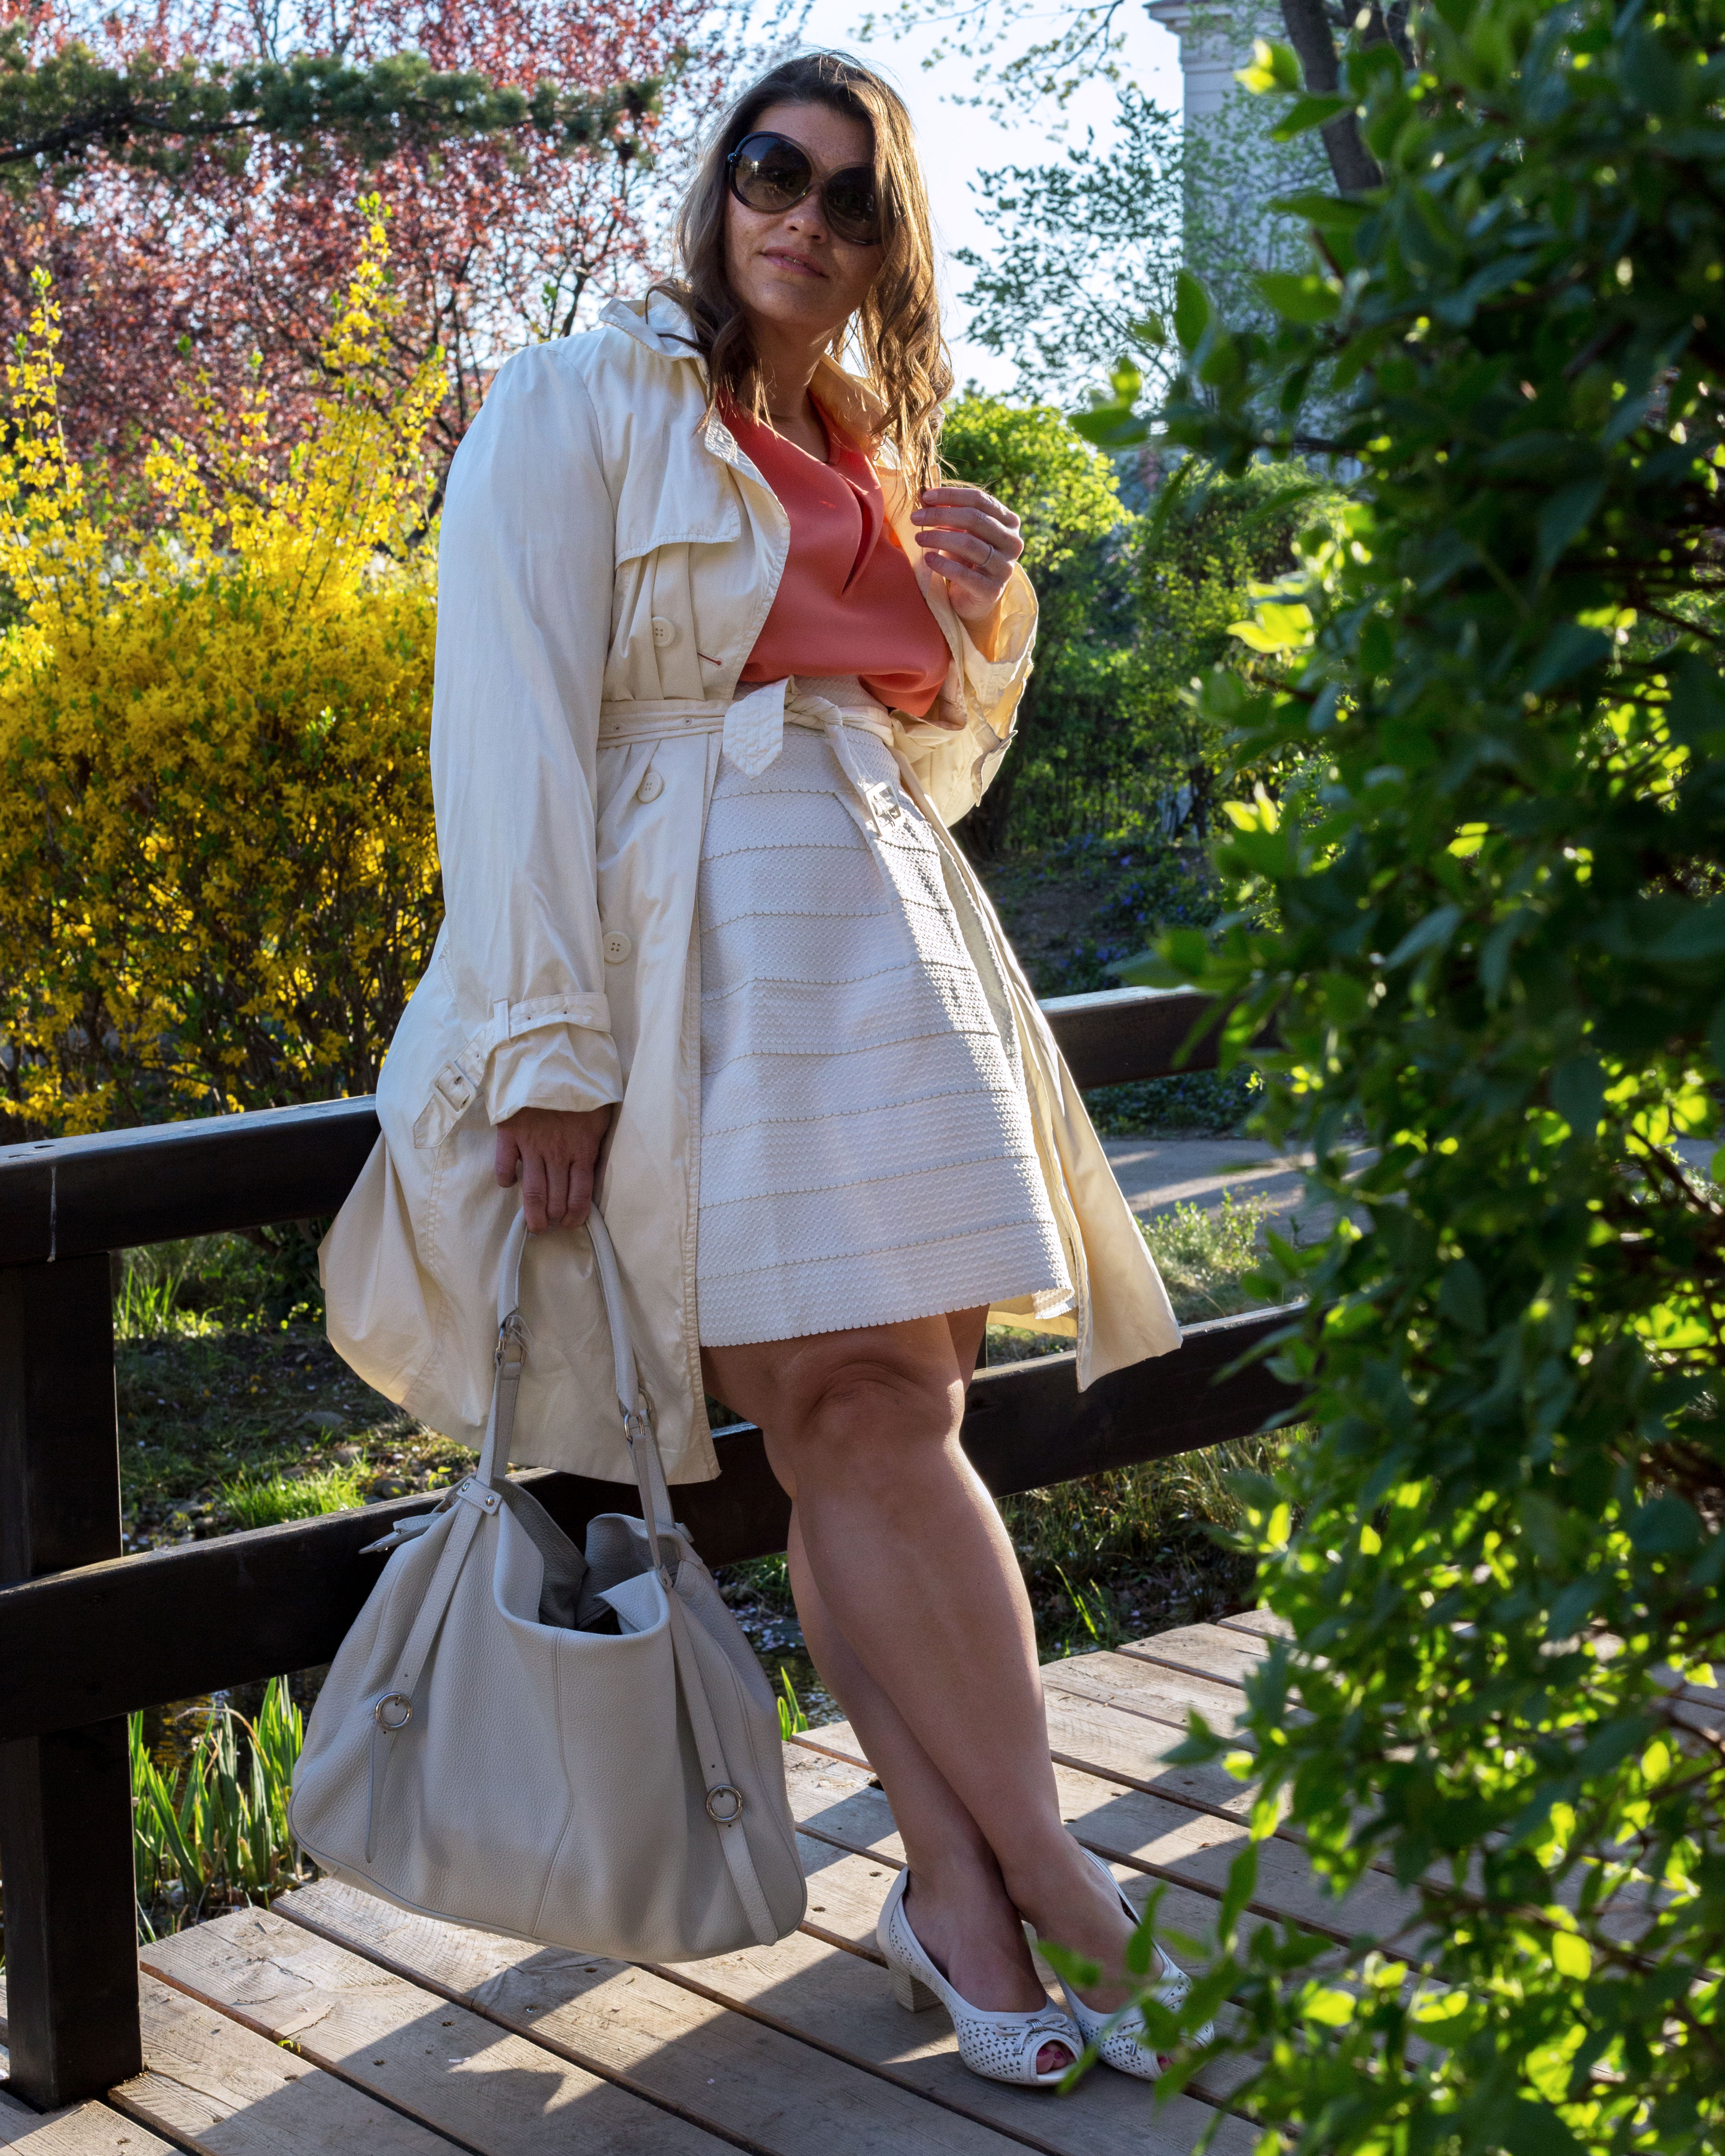 MW-spring-look-my-look-plussize-fashion-outfit-hm-tellerrock-setagaya-park-kardiaserena-peach-tom-ford-sonnenbrille